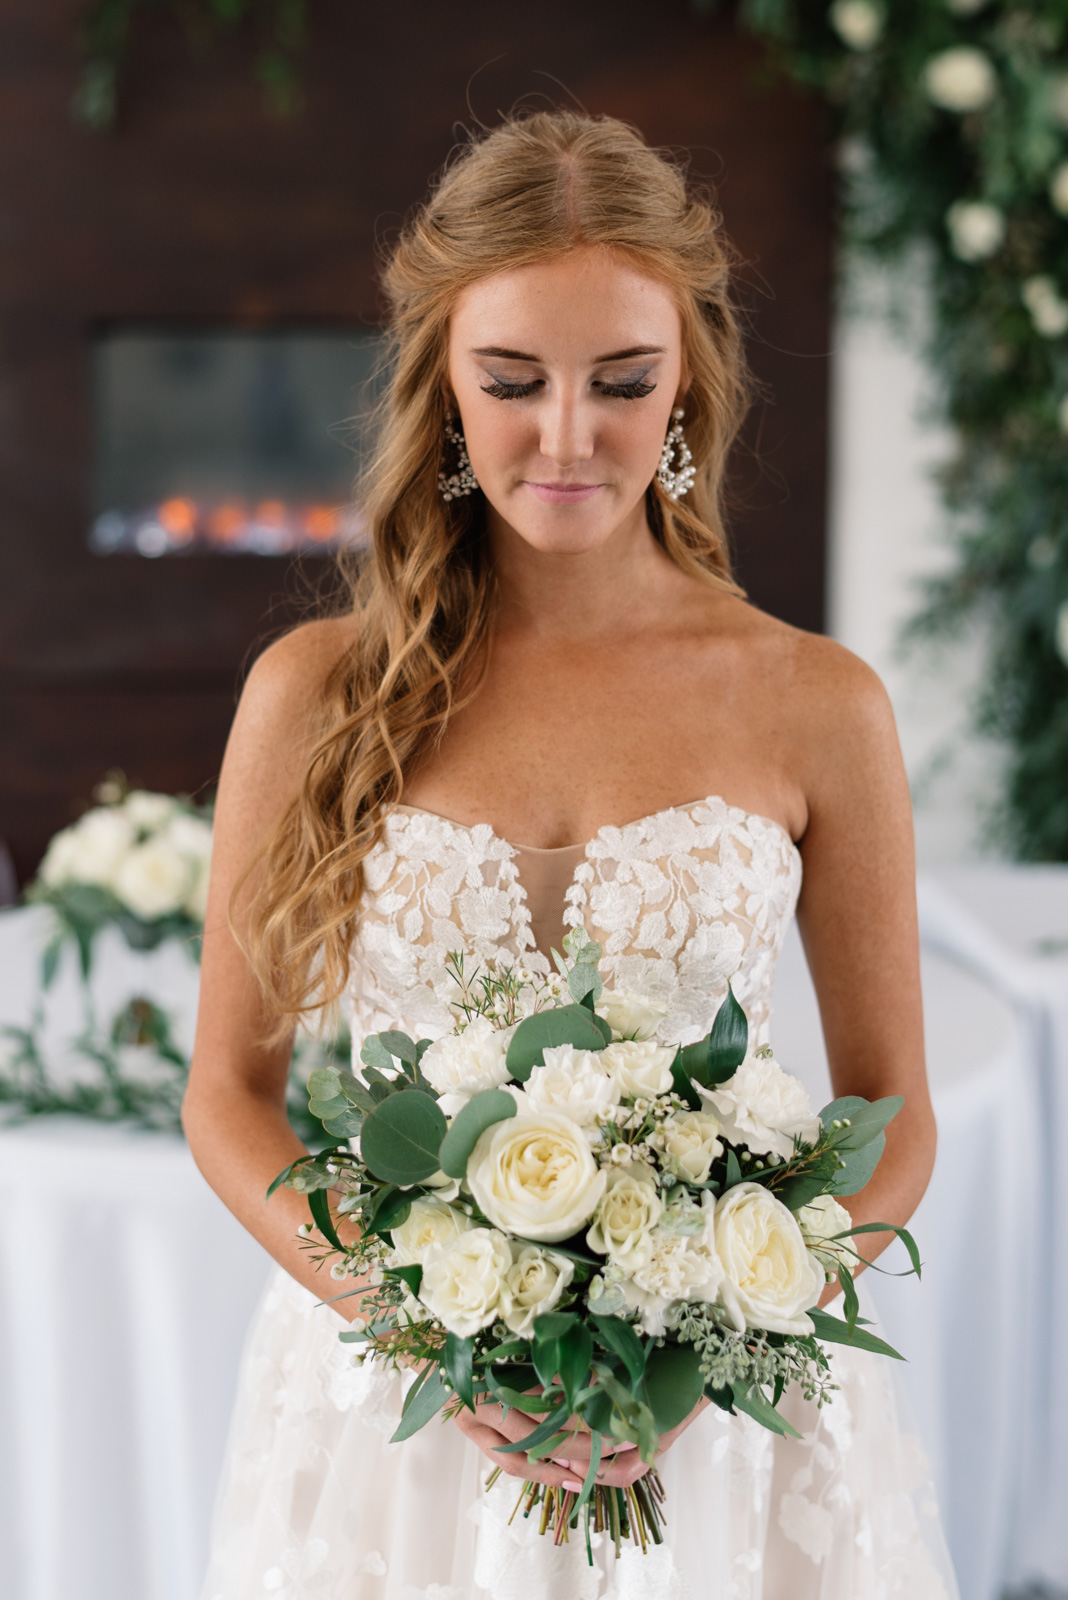 bride holds white rose wedding bouquet koru berry farm wedding venue